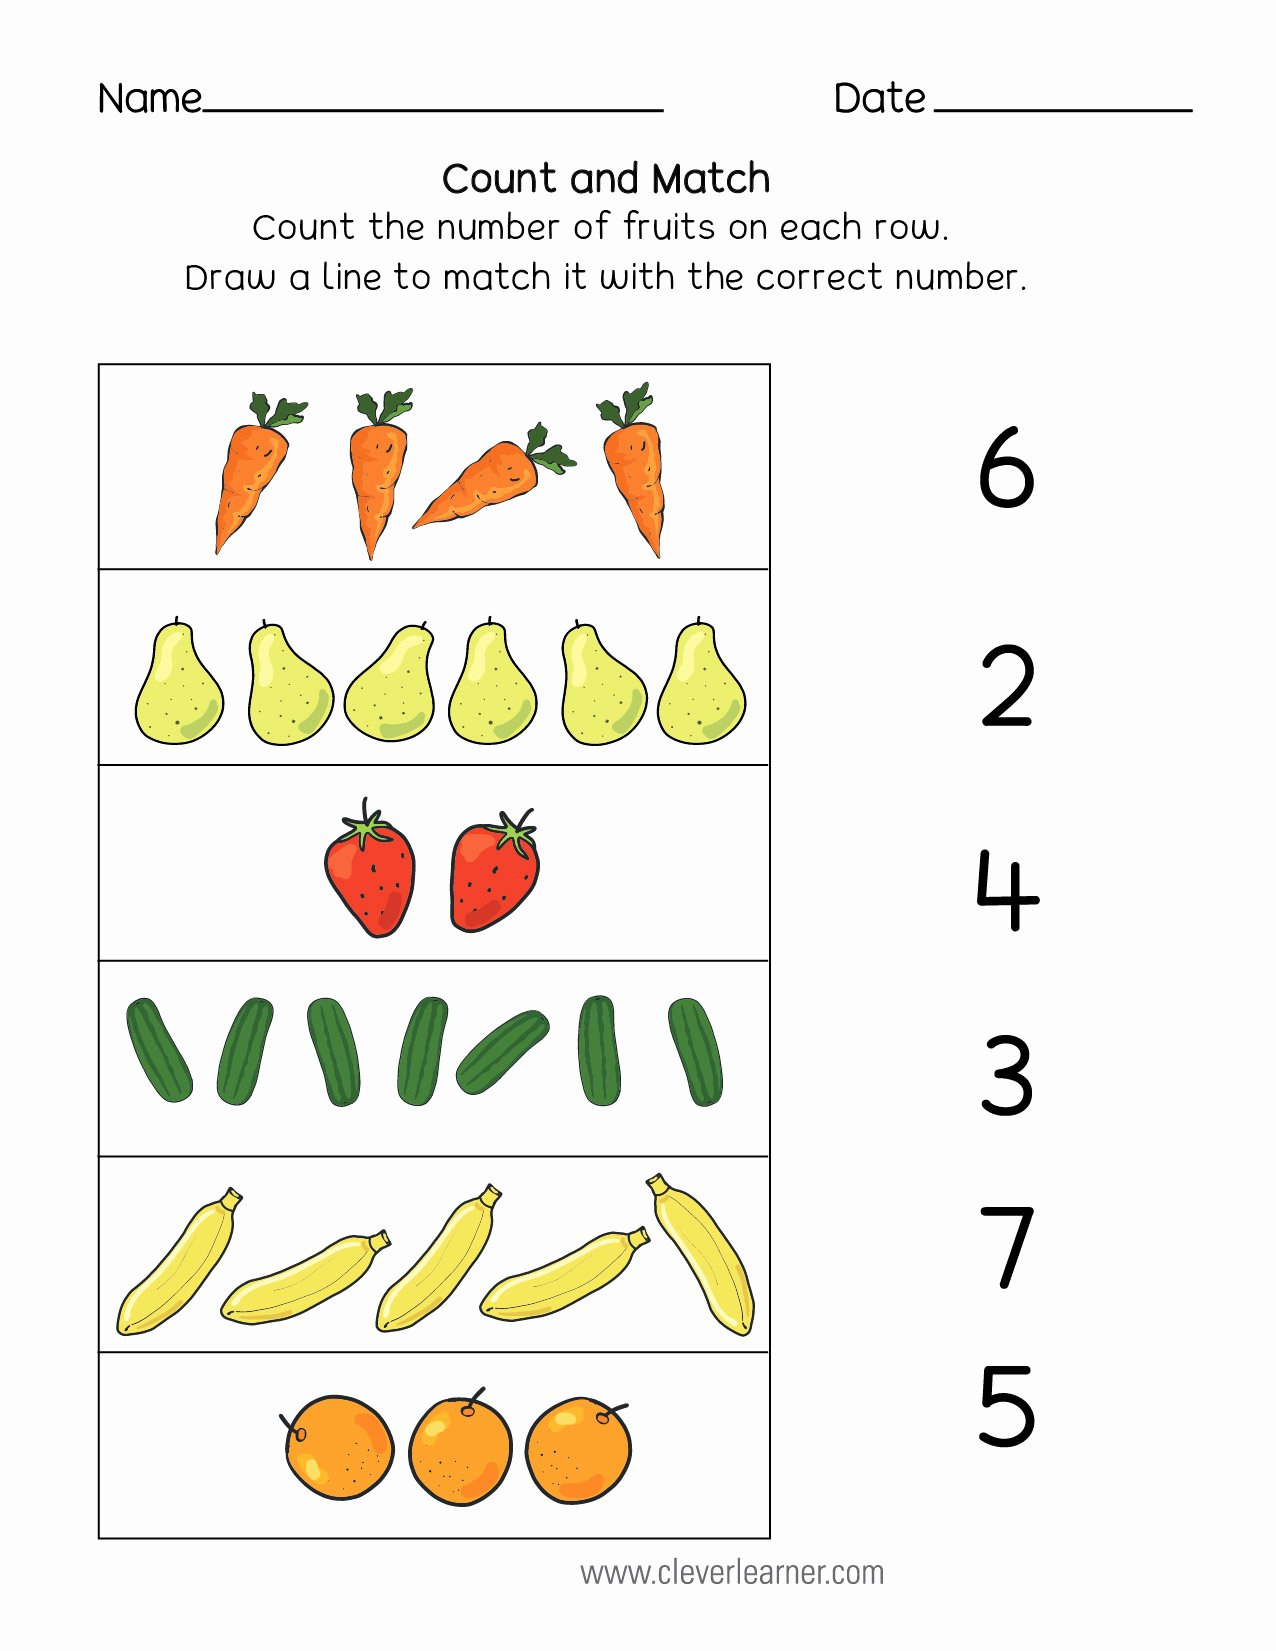 Association Worksheets for Preschoolers Best Of Number Matching Counting and Number Writing Worksheets